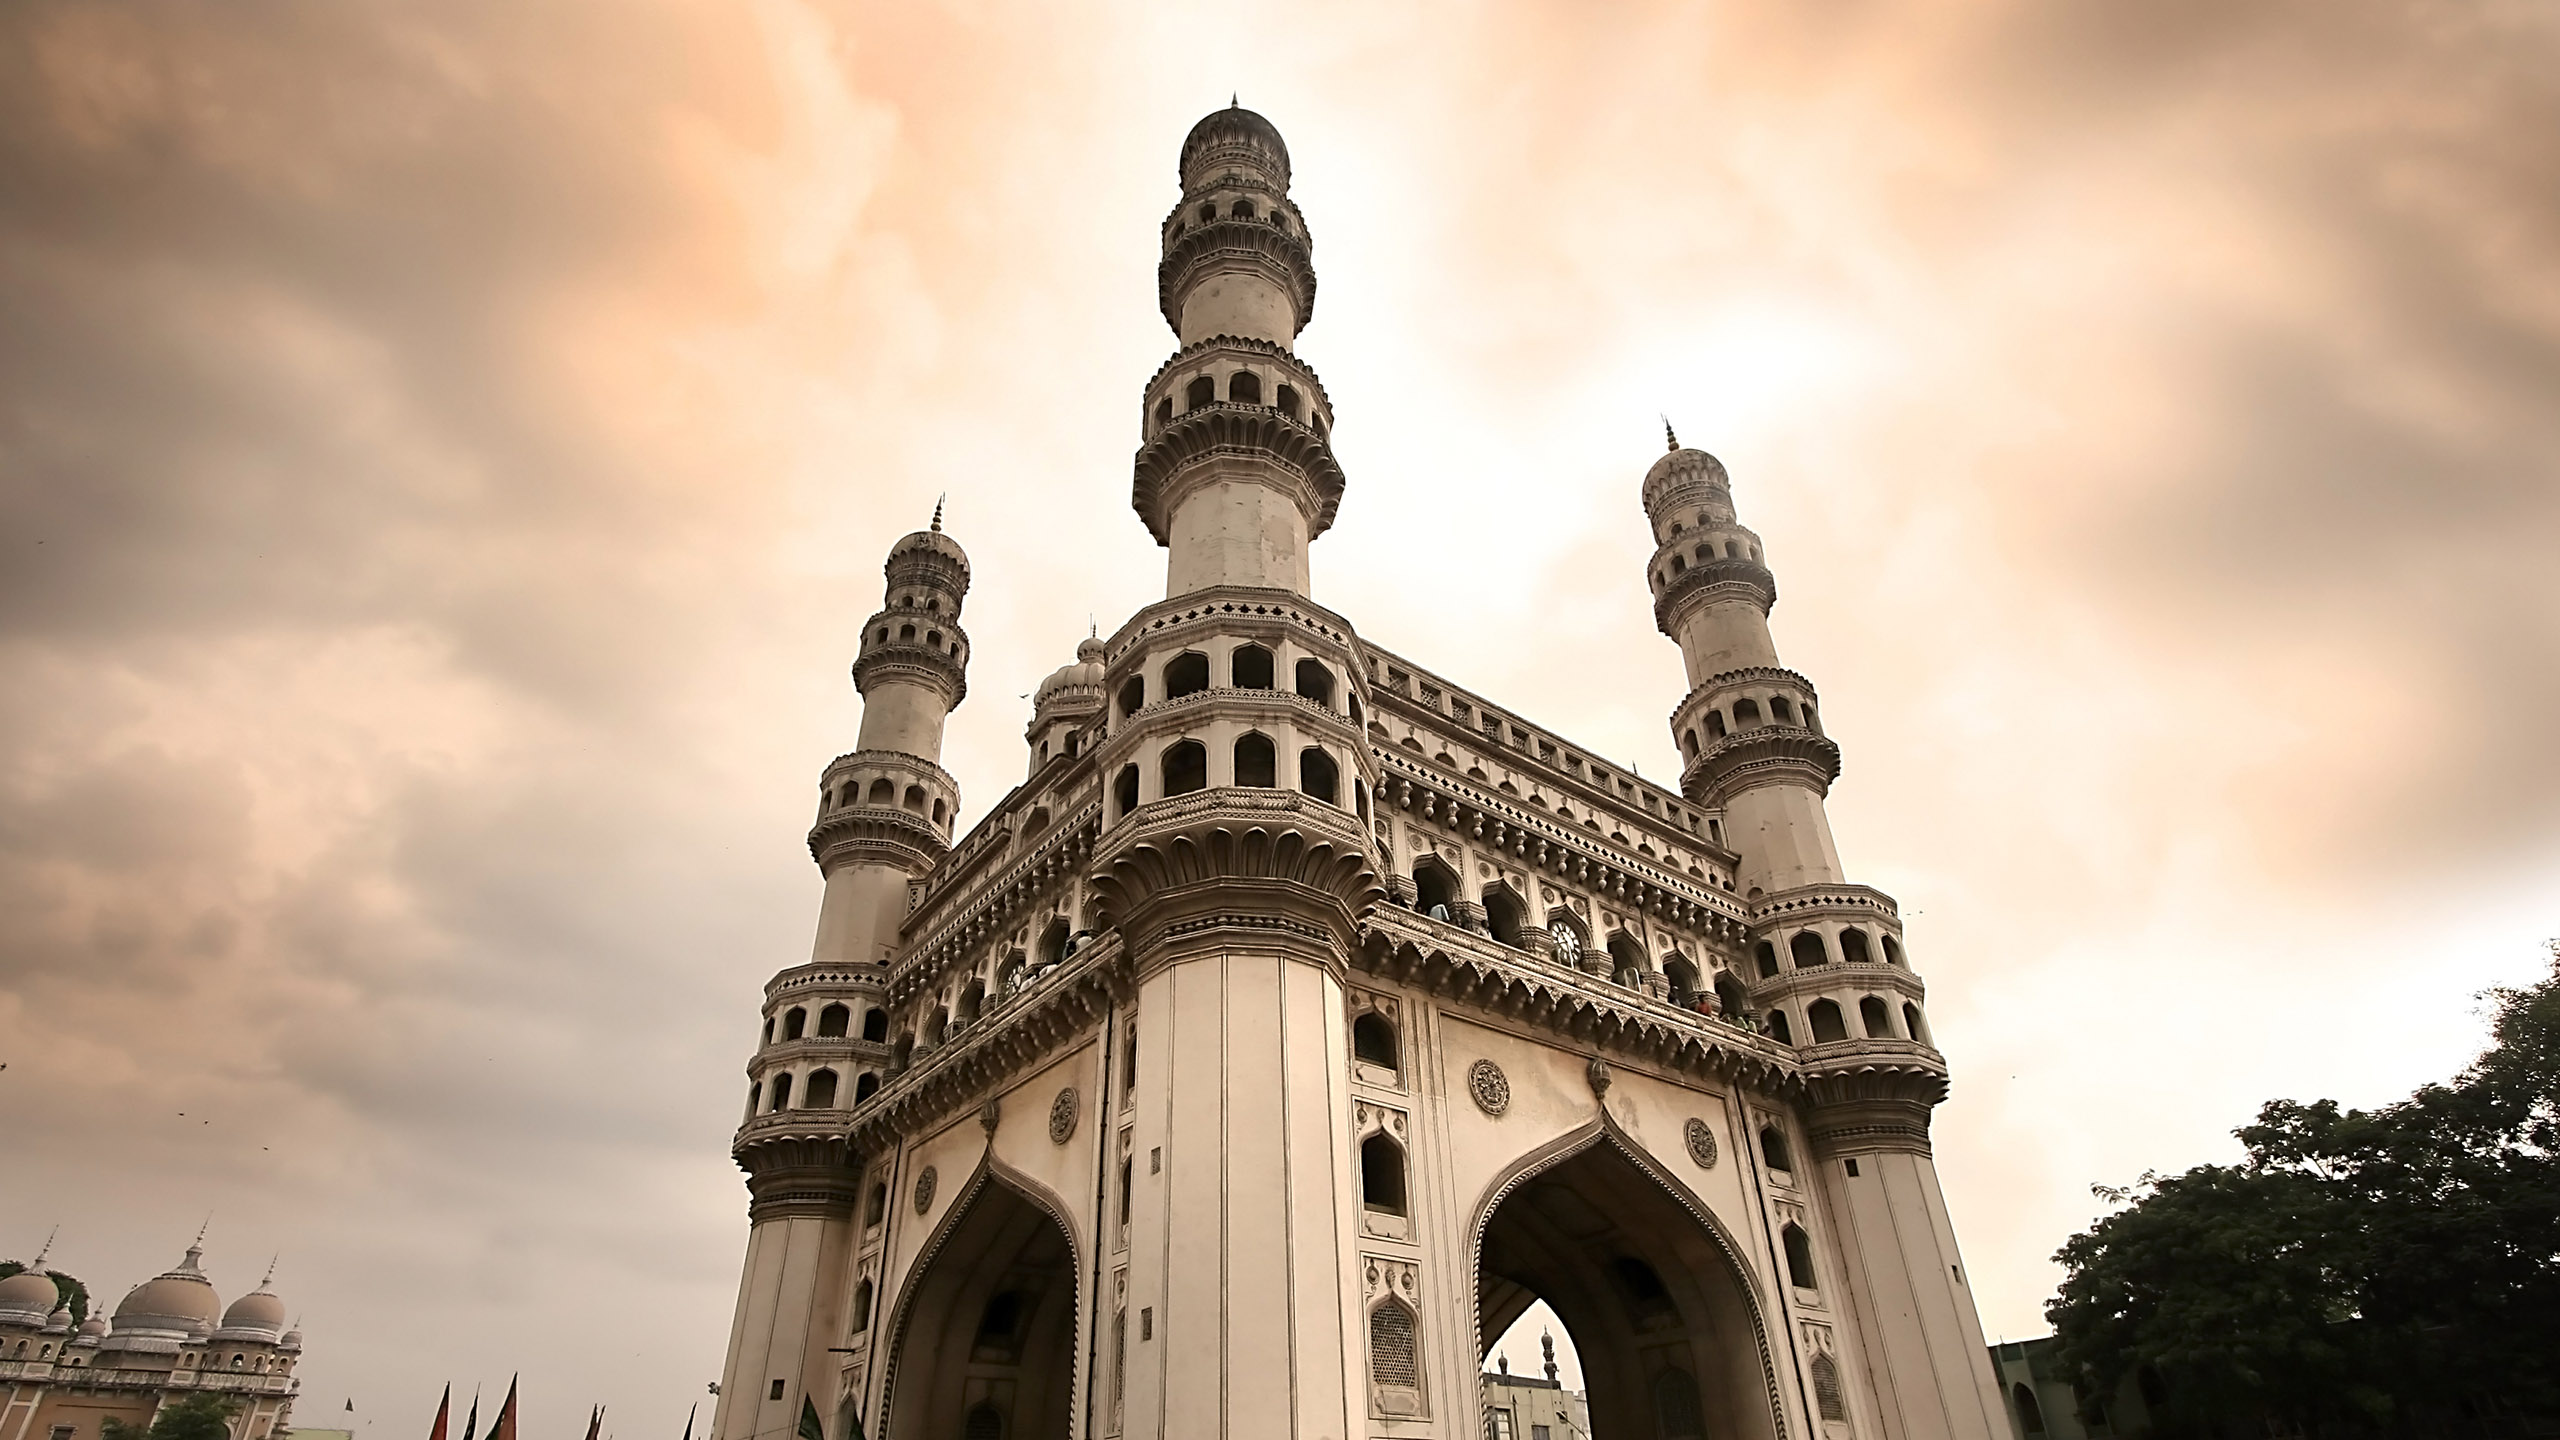 Hyderabad, Indian Subcontinent